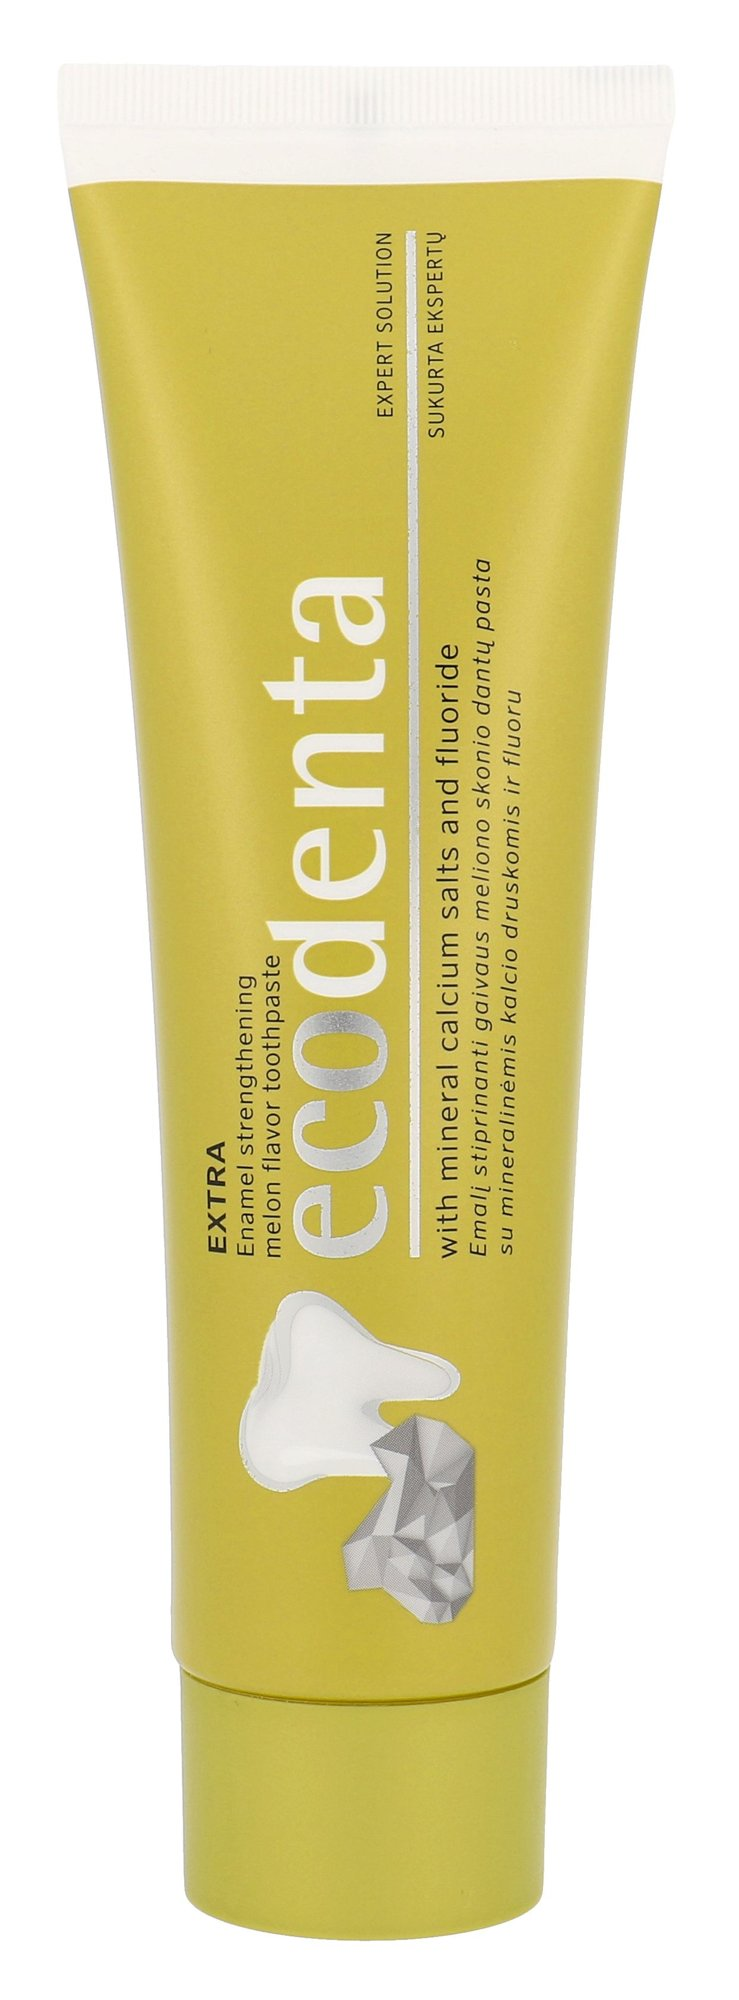 Ecodenta Toothpaste Cosmetic 100ml  Extra Enamel Strengthening Melon Flavor